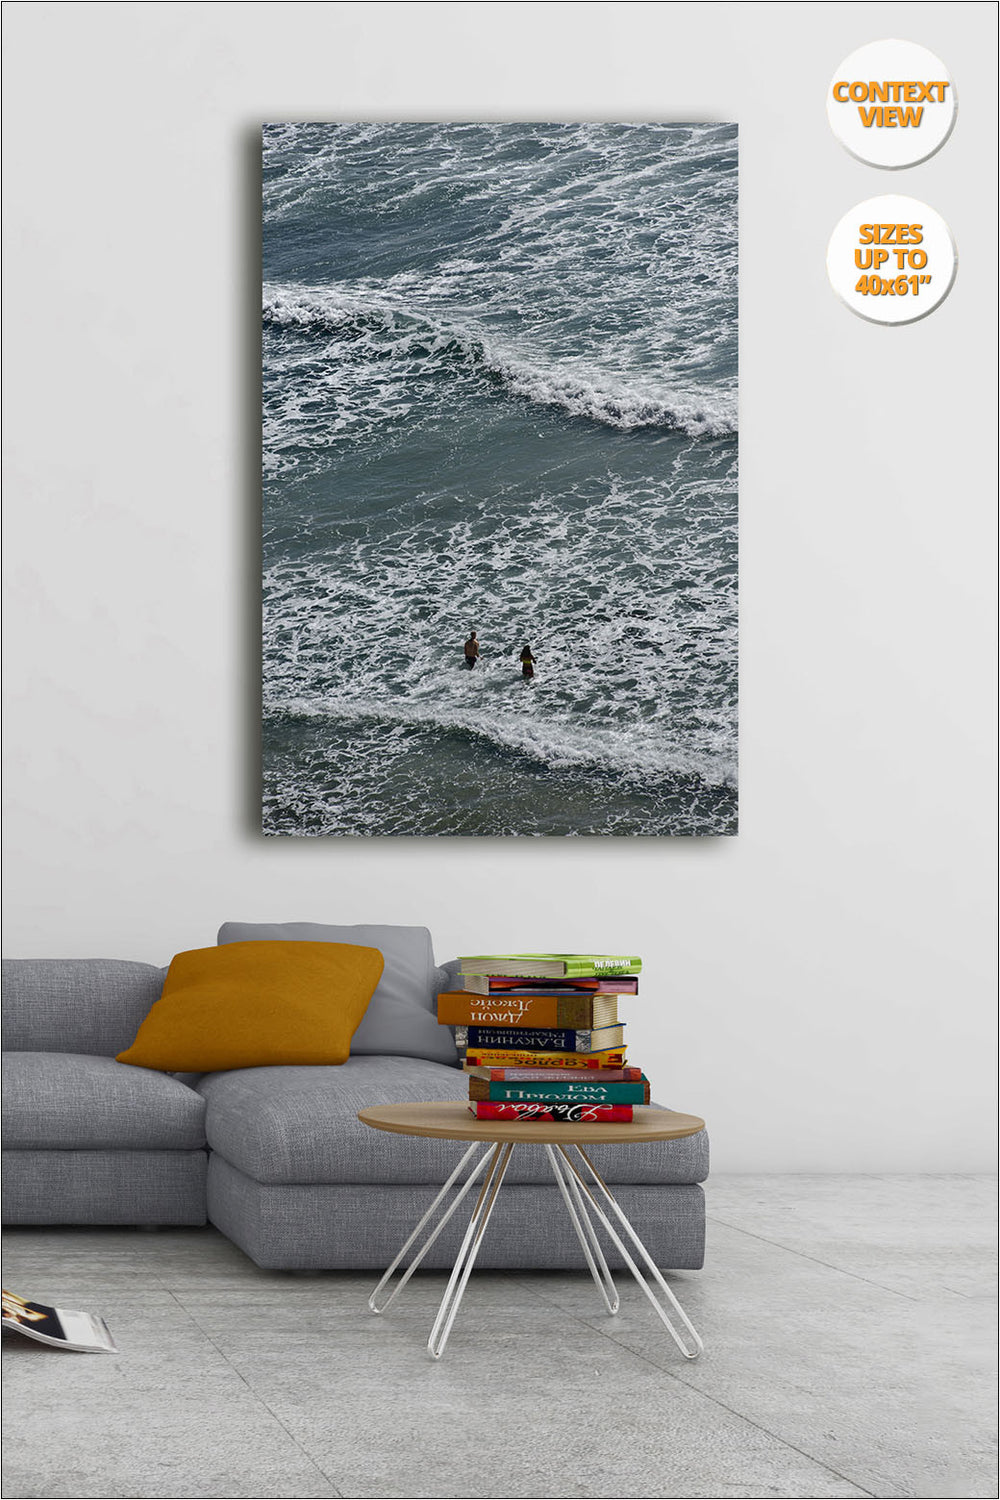 Swimmers in Blacks Beach, San Diego, California. | Print hanged in living room.